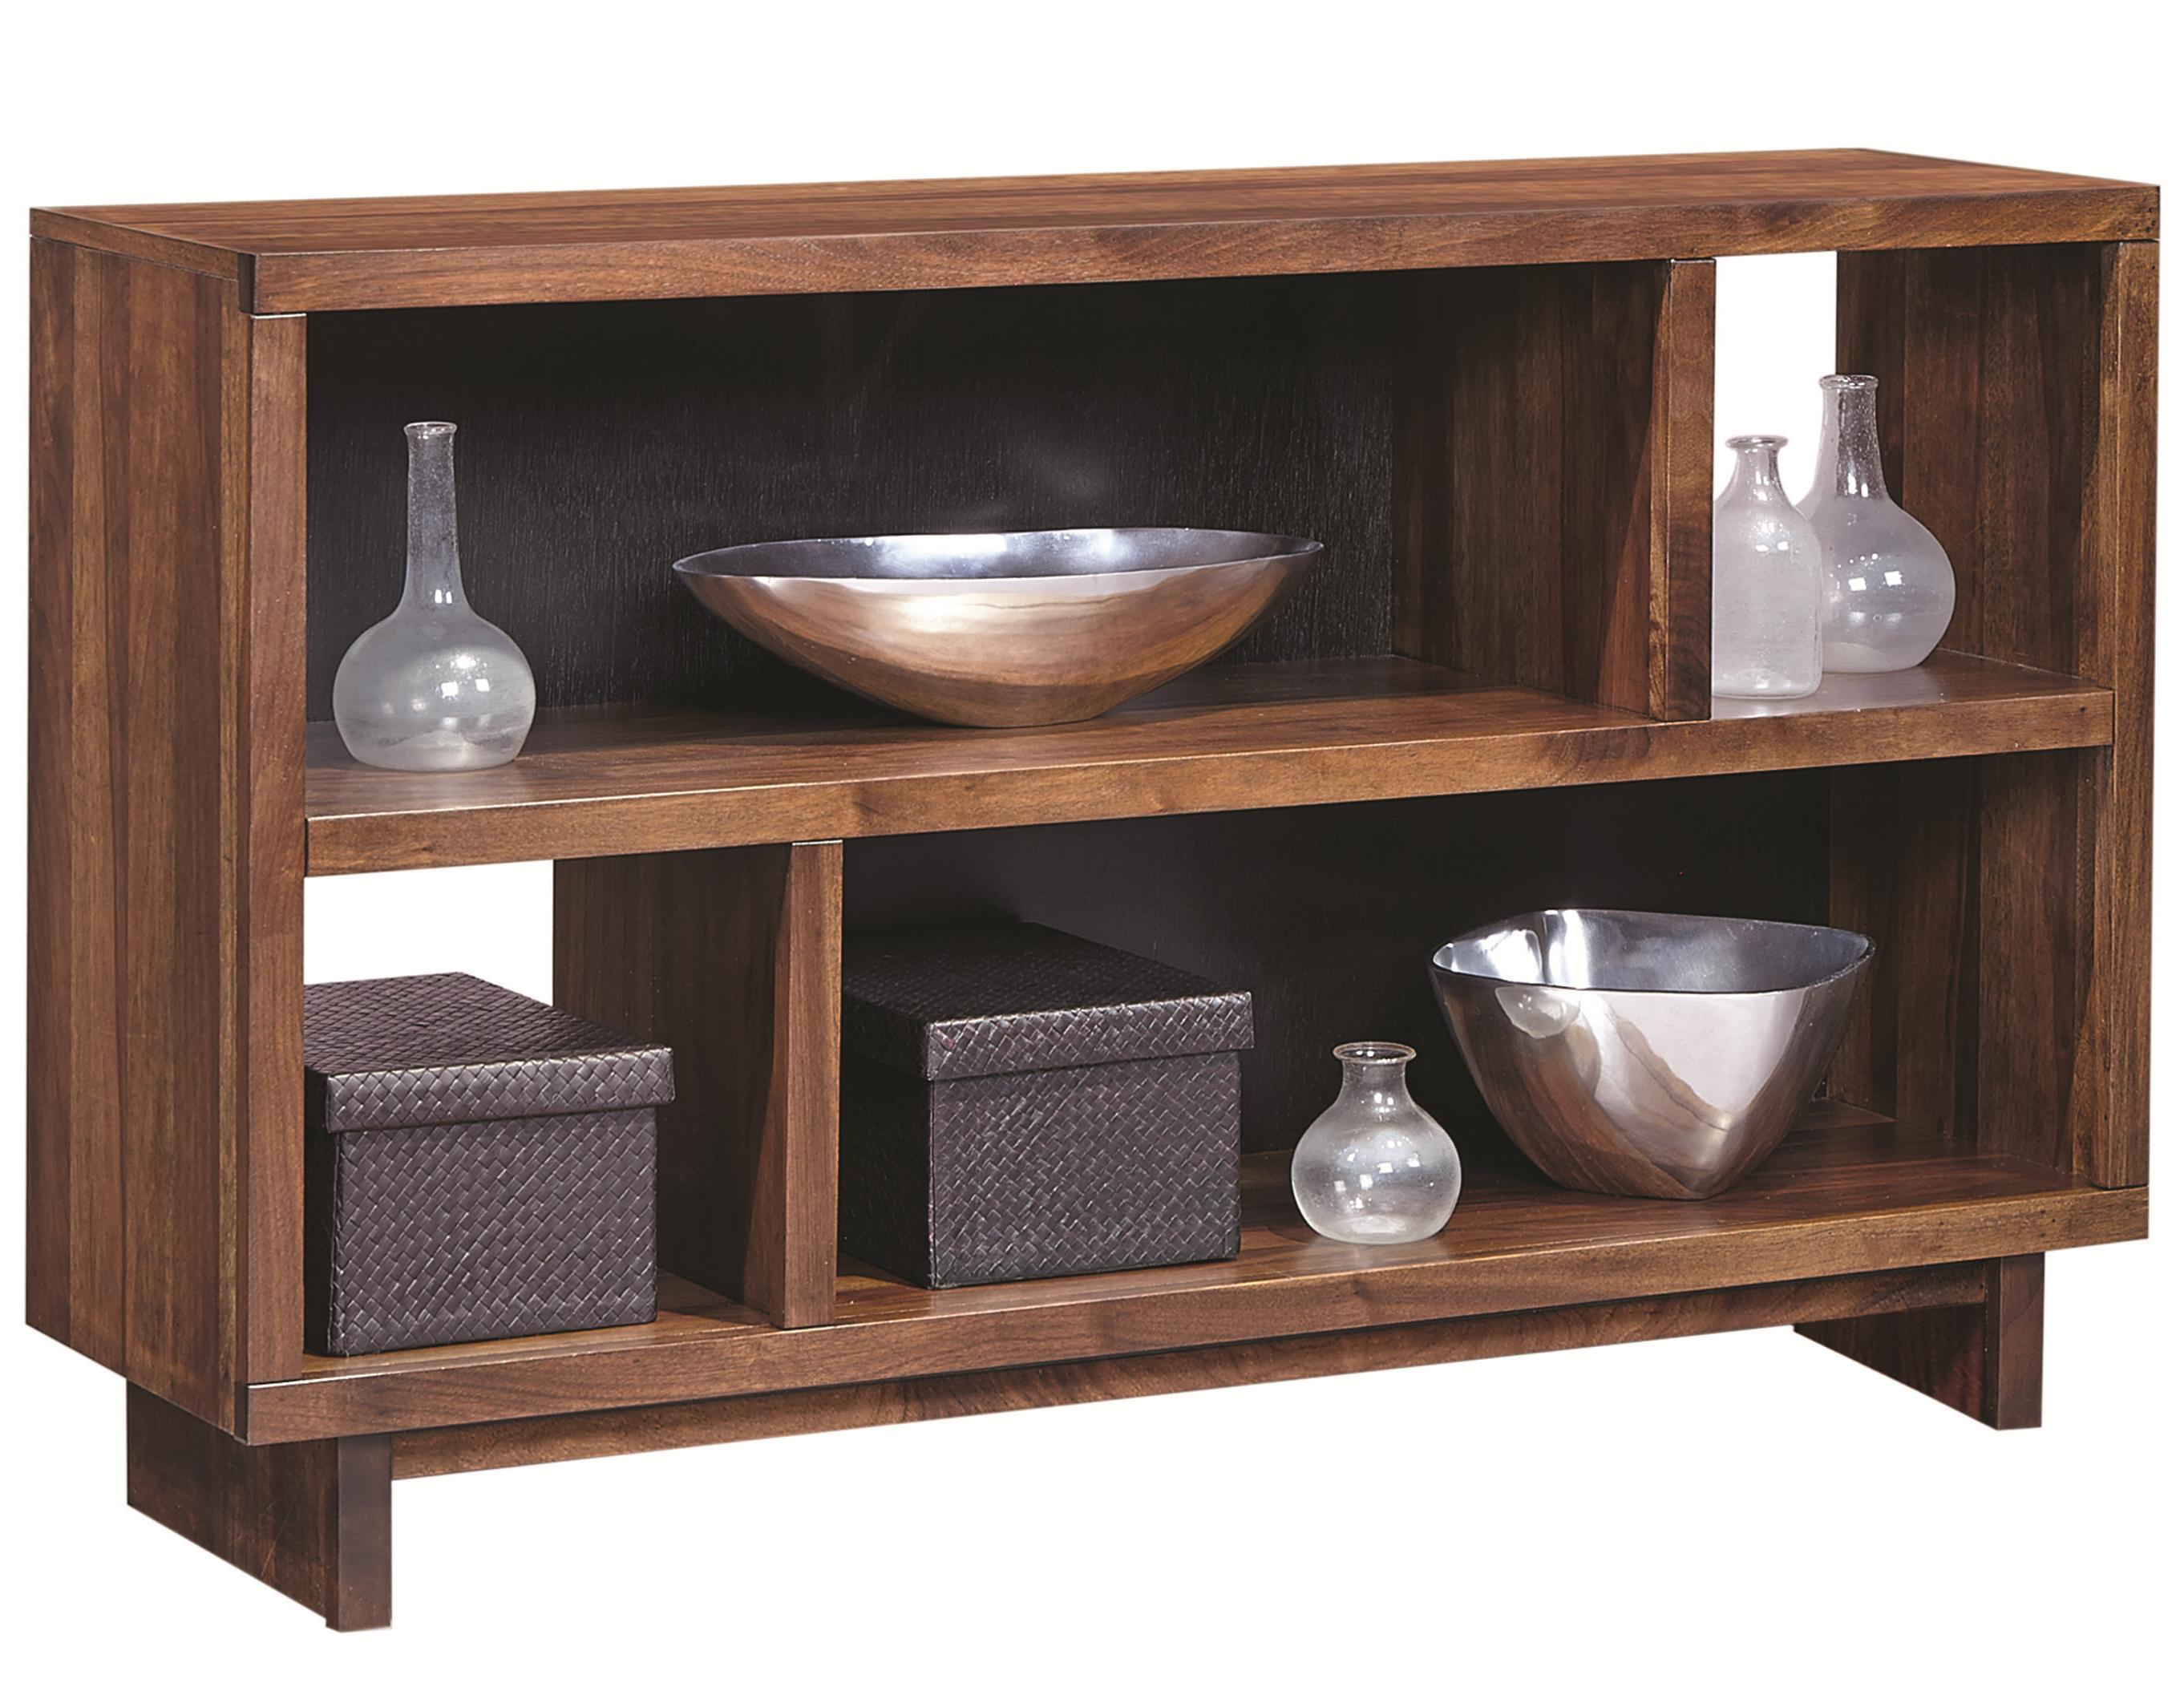 Aspenhome Walnut Heights Console Table - Item Number: WH916-STO